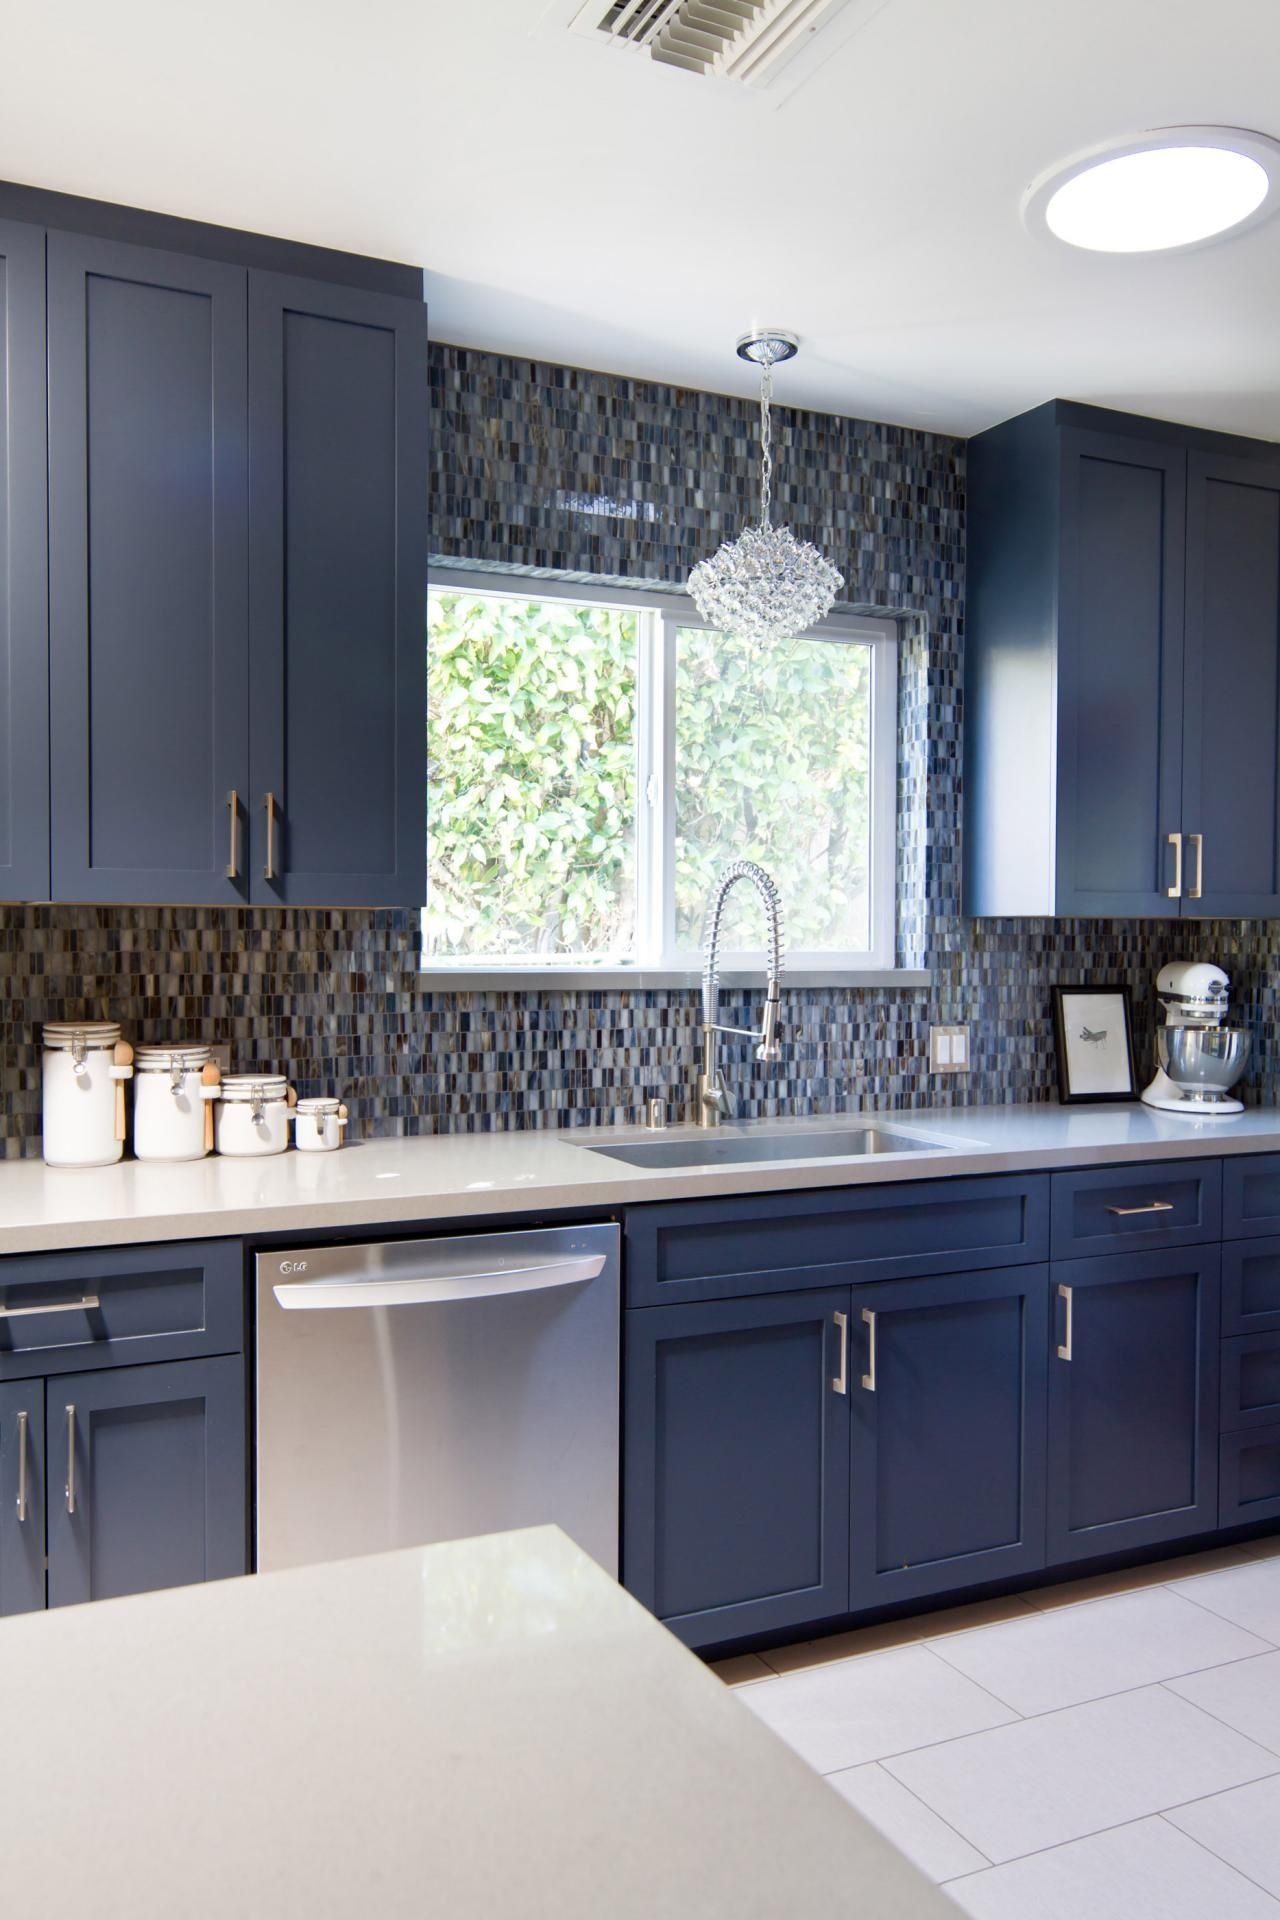 Charming MidCentury Kitchen Designs That Will Take You